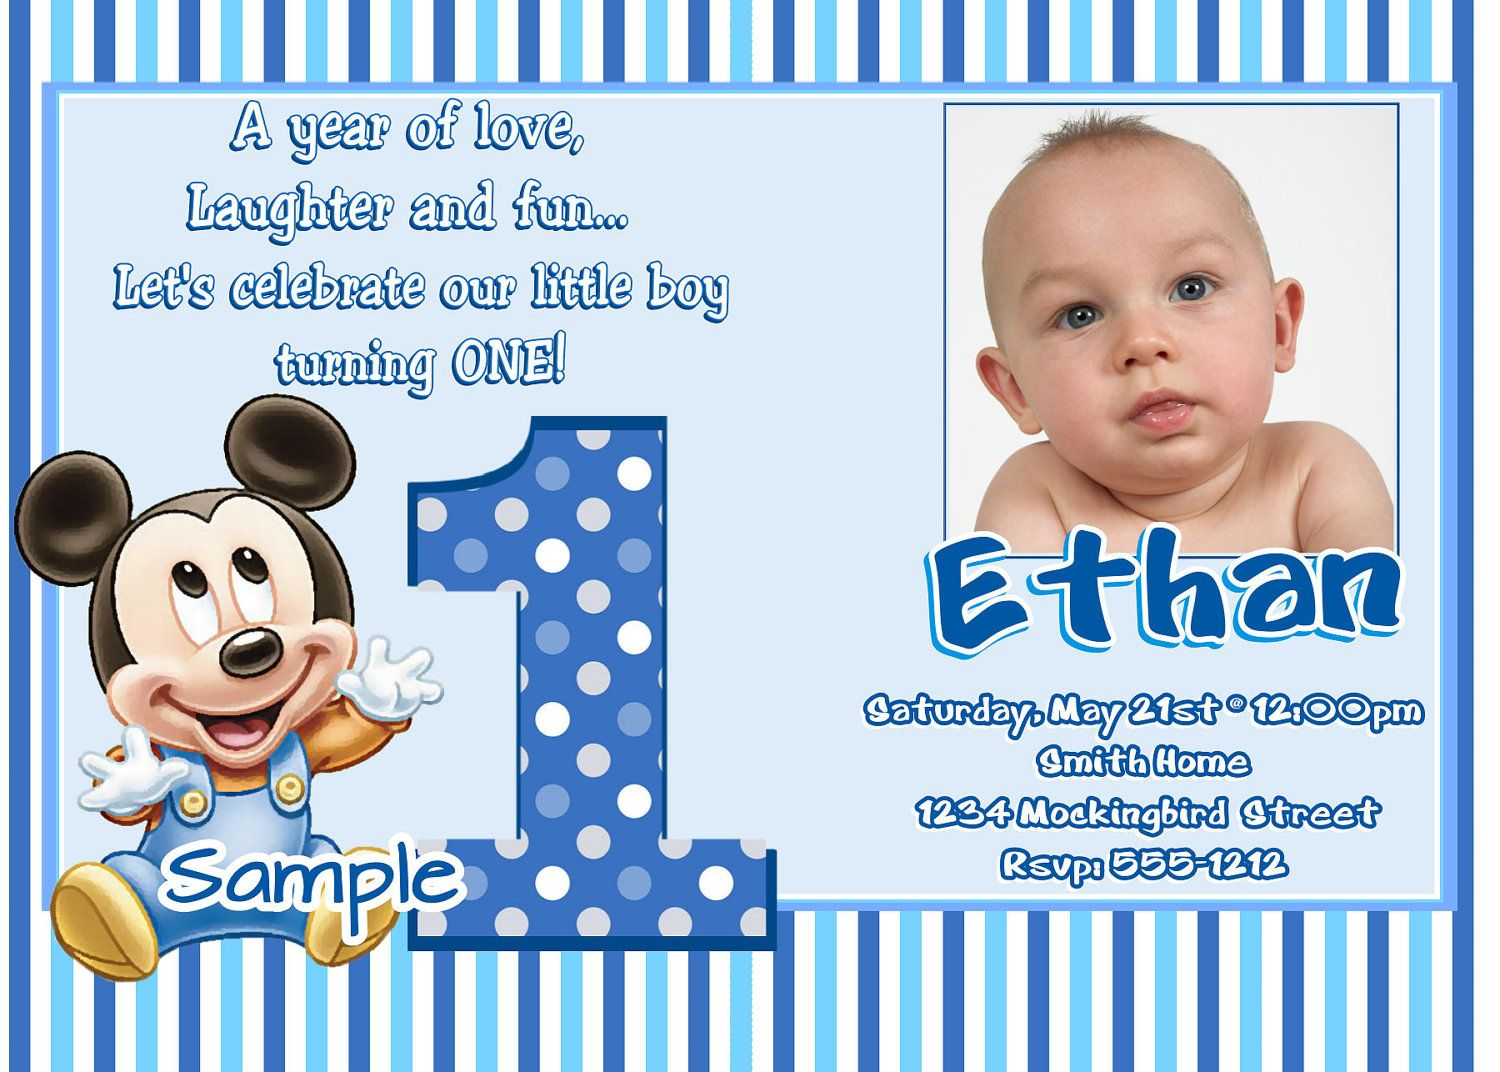 Free 1st birthday invitation maker invitation sample pinterest free 1st birthday invitation maker filmwisefo